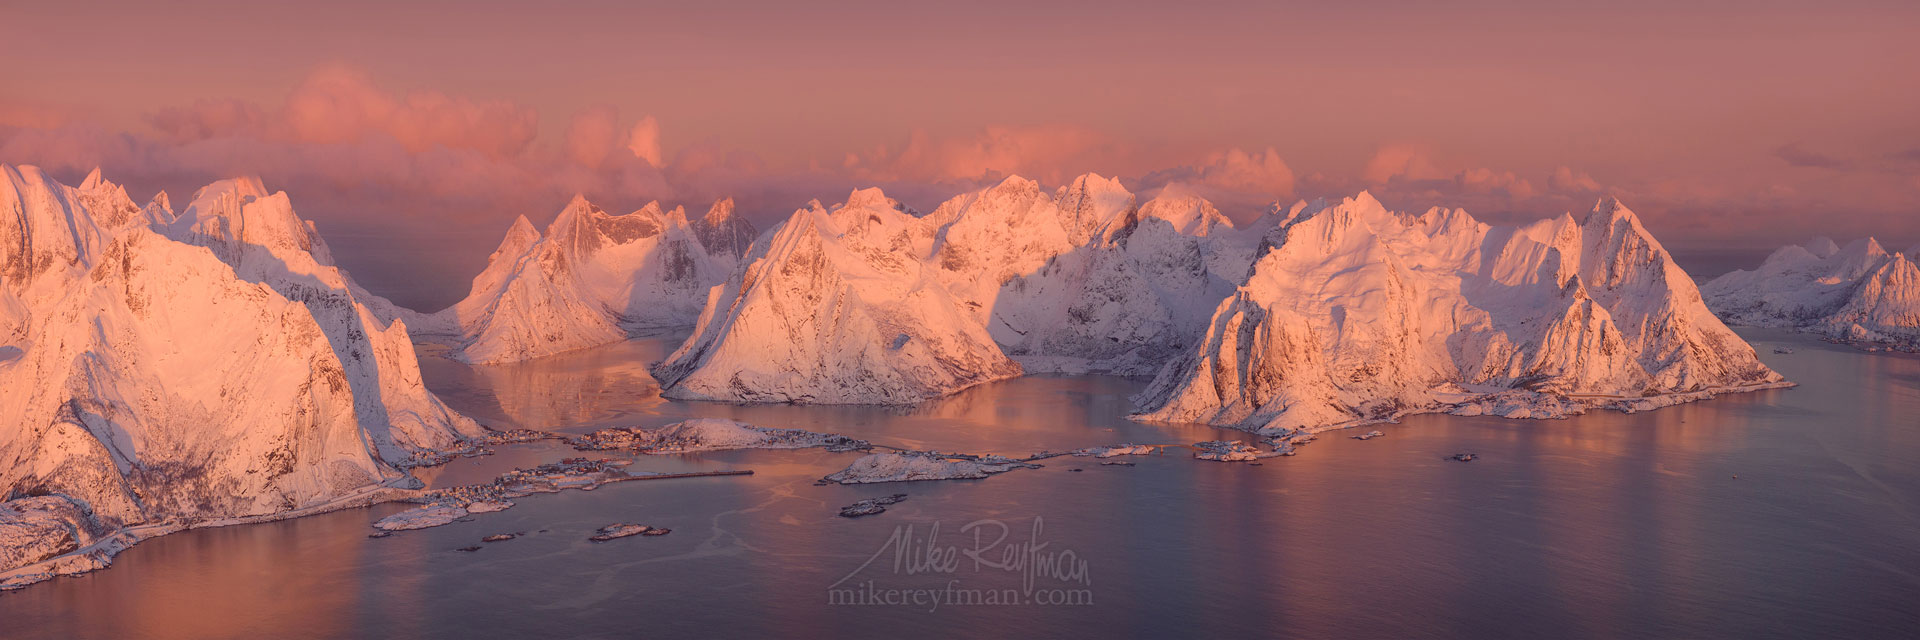 Aerial panoramic view of Lofoten archipelago and fishing village of Reine at sunrise. Moskenes, Lofoten archipelago, Norway. LF-MRD1E1365-68_Pano-3x1 - Lofoten Archipelago in Winter, Arctic Norway - Mike Reyfman Photography